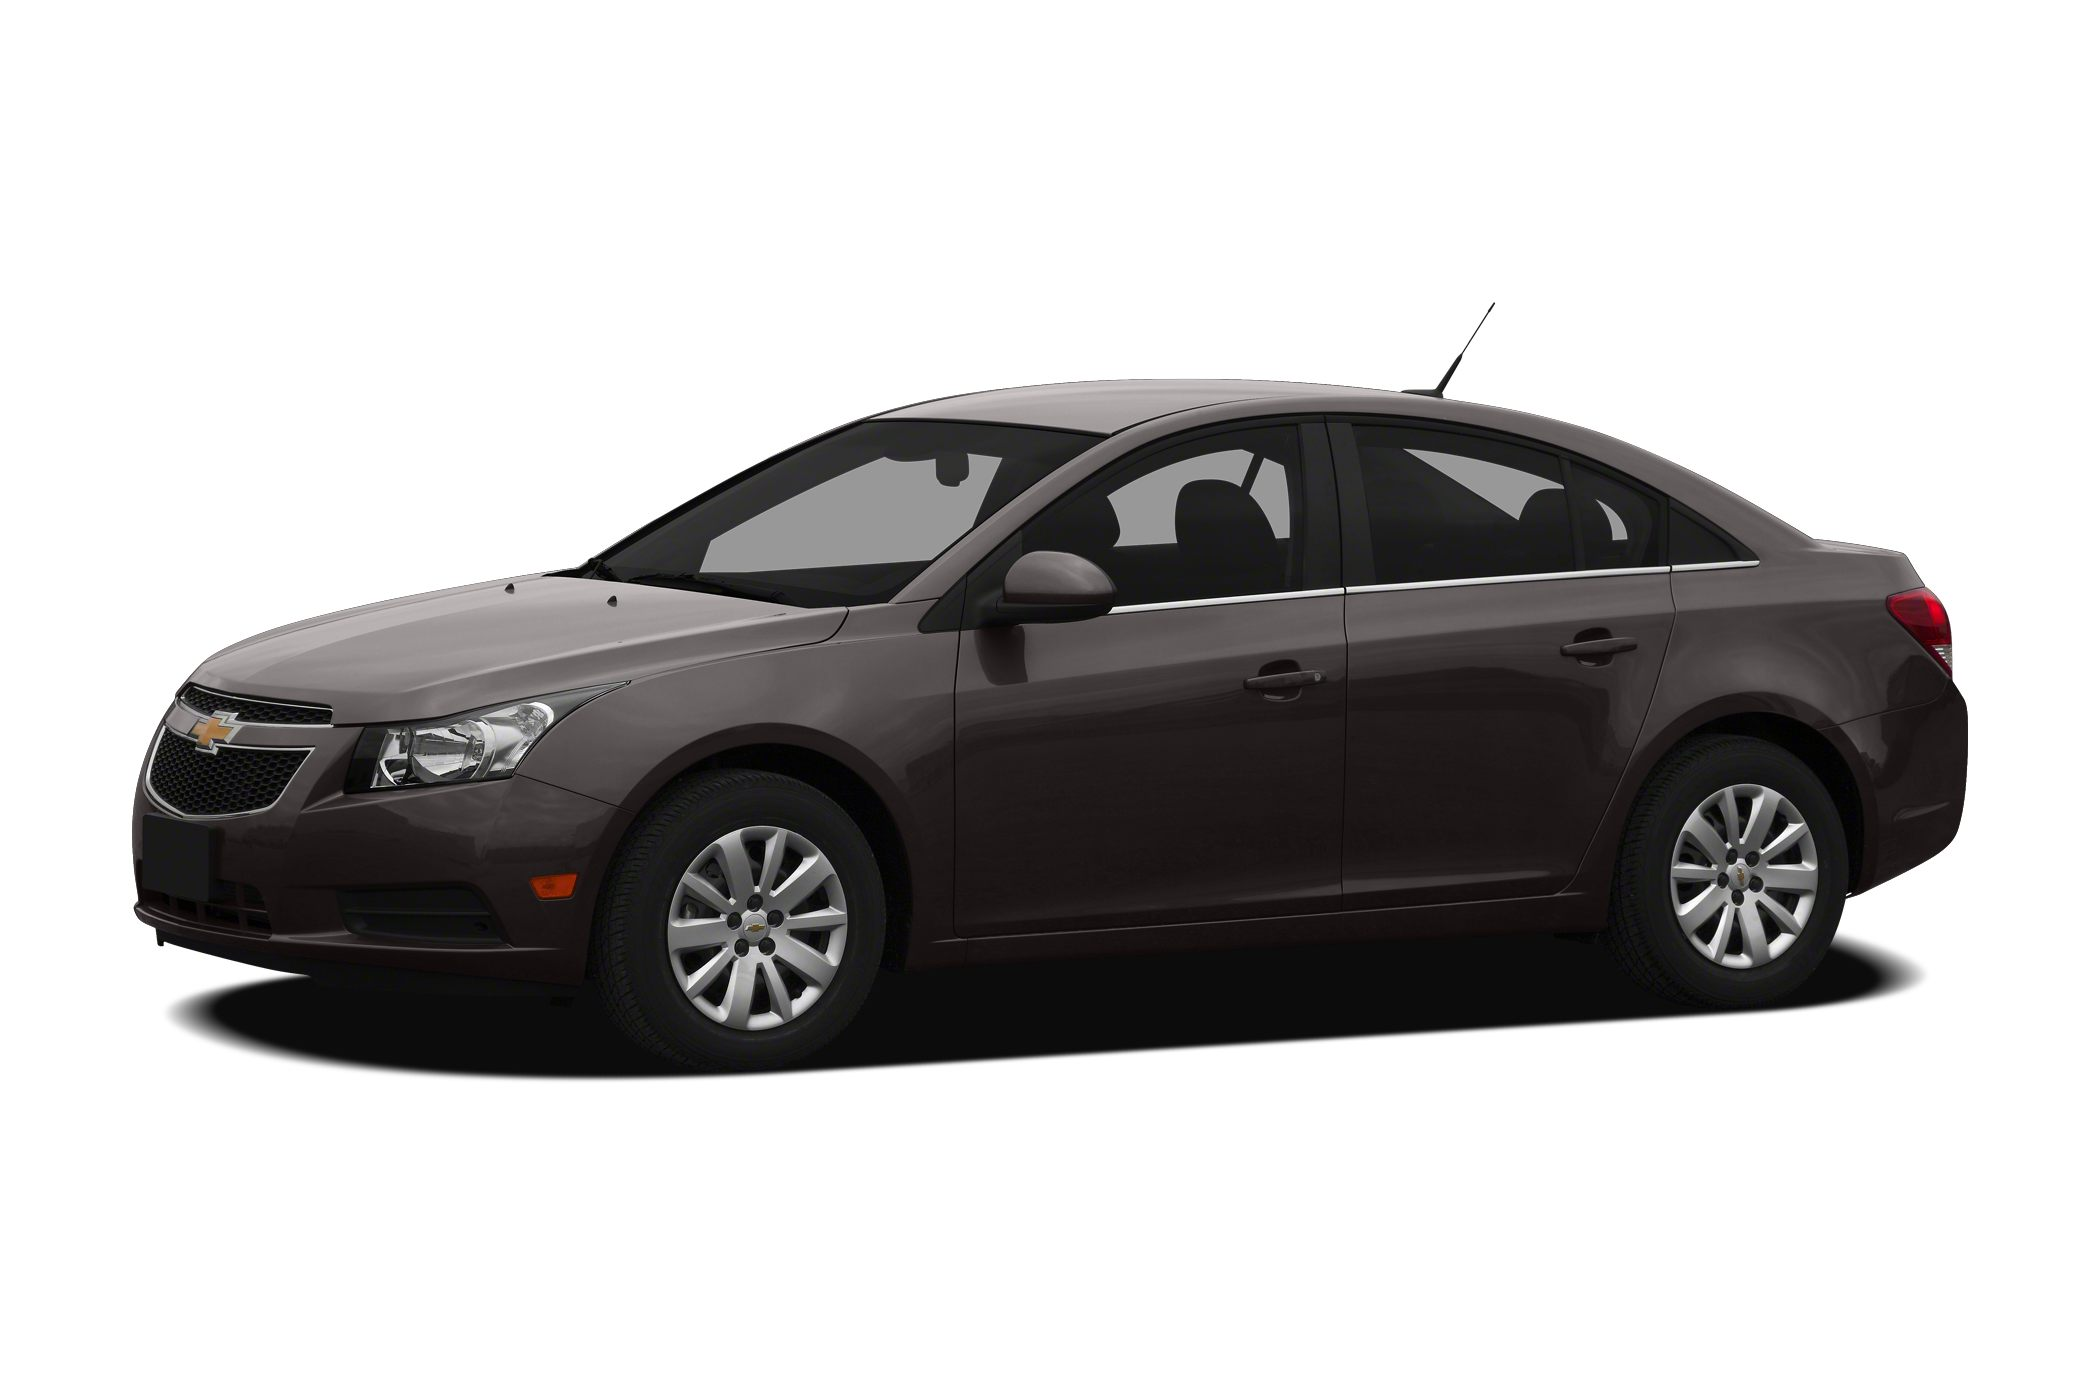 2012 Chevrolet Cruze 1LT In a class by itself Join us at First Hyundai The Cruze is a top dog am